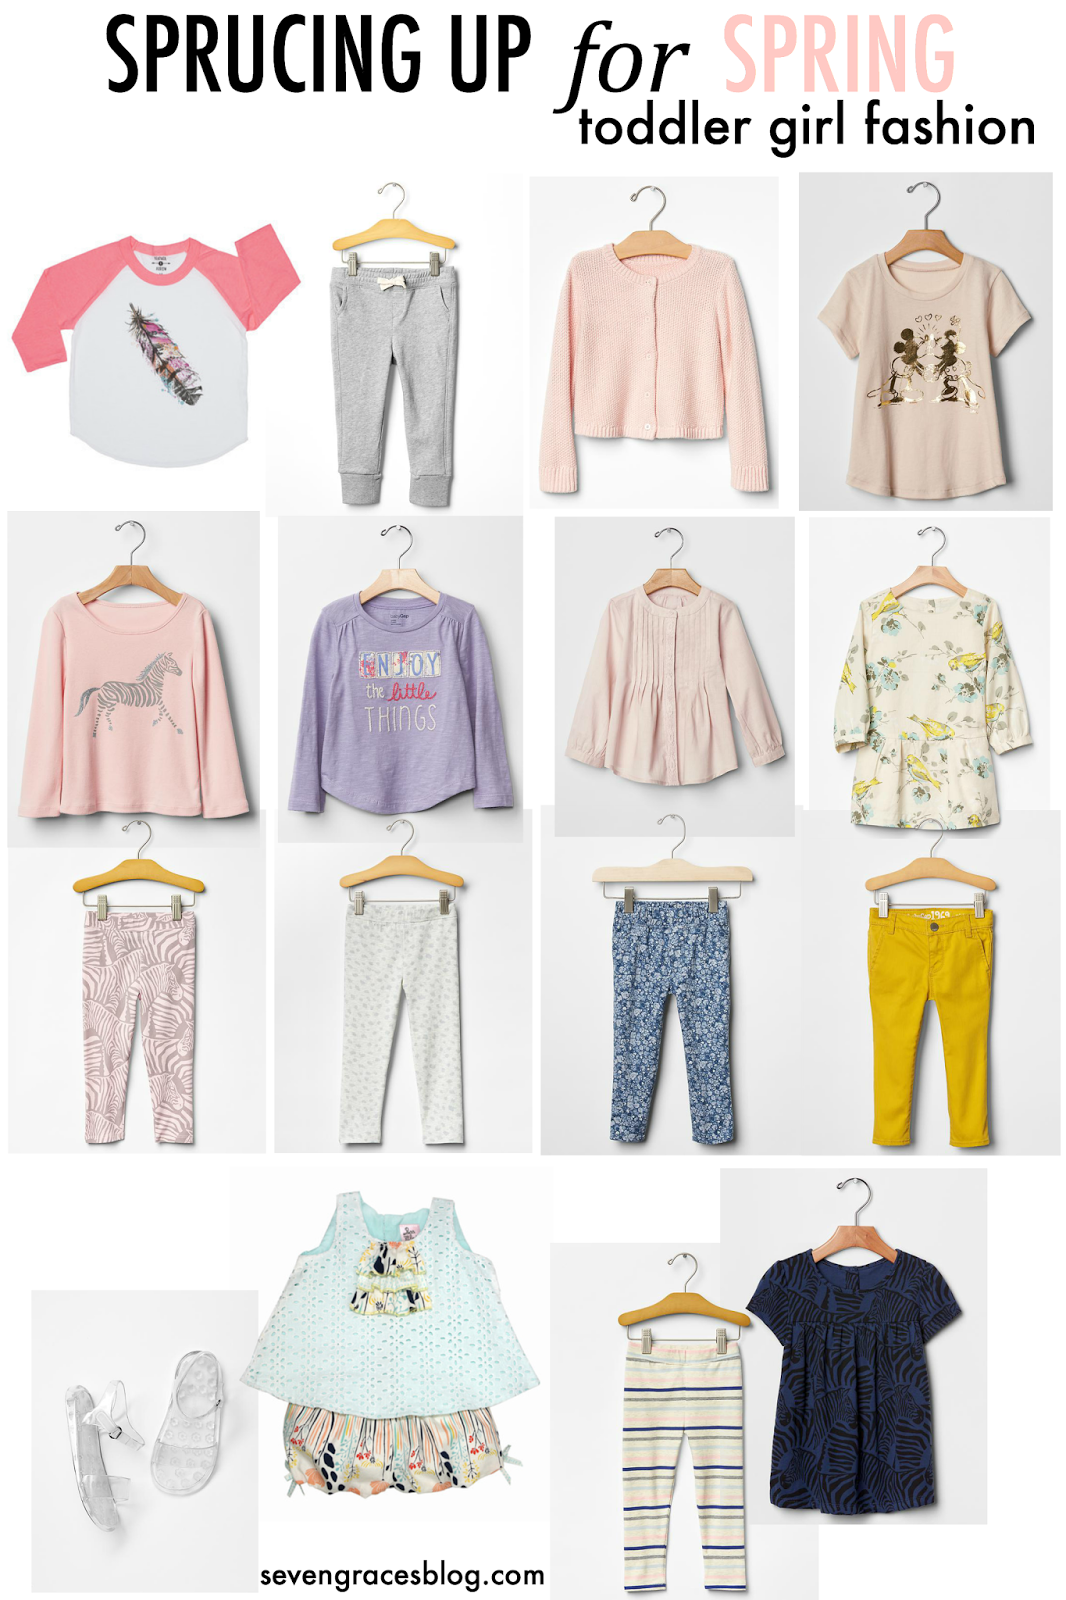 Toddler Girl Fashion: Sprucing Up for Spring